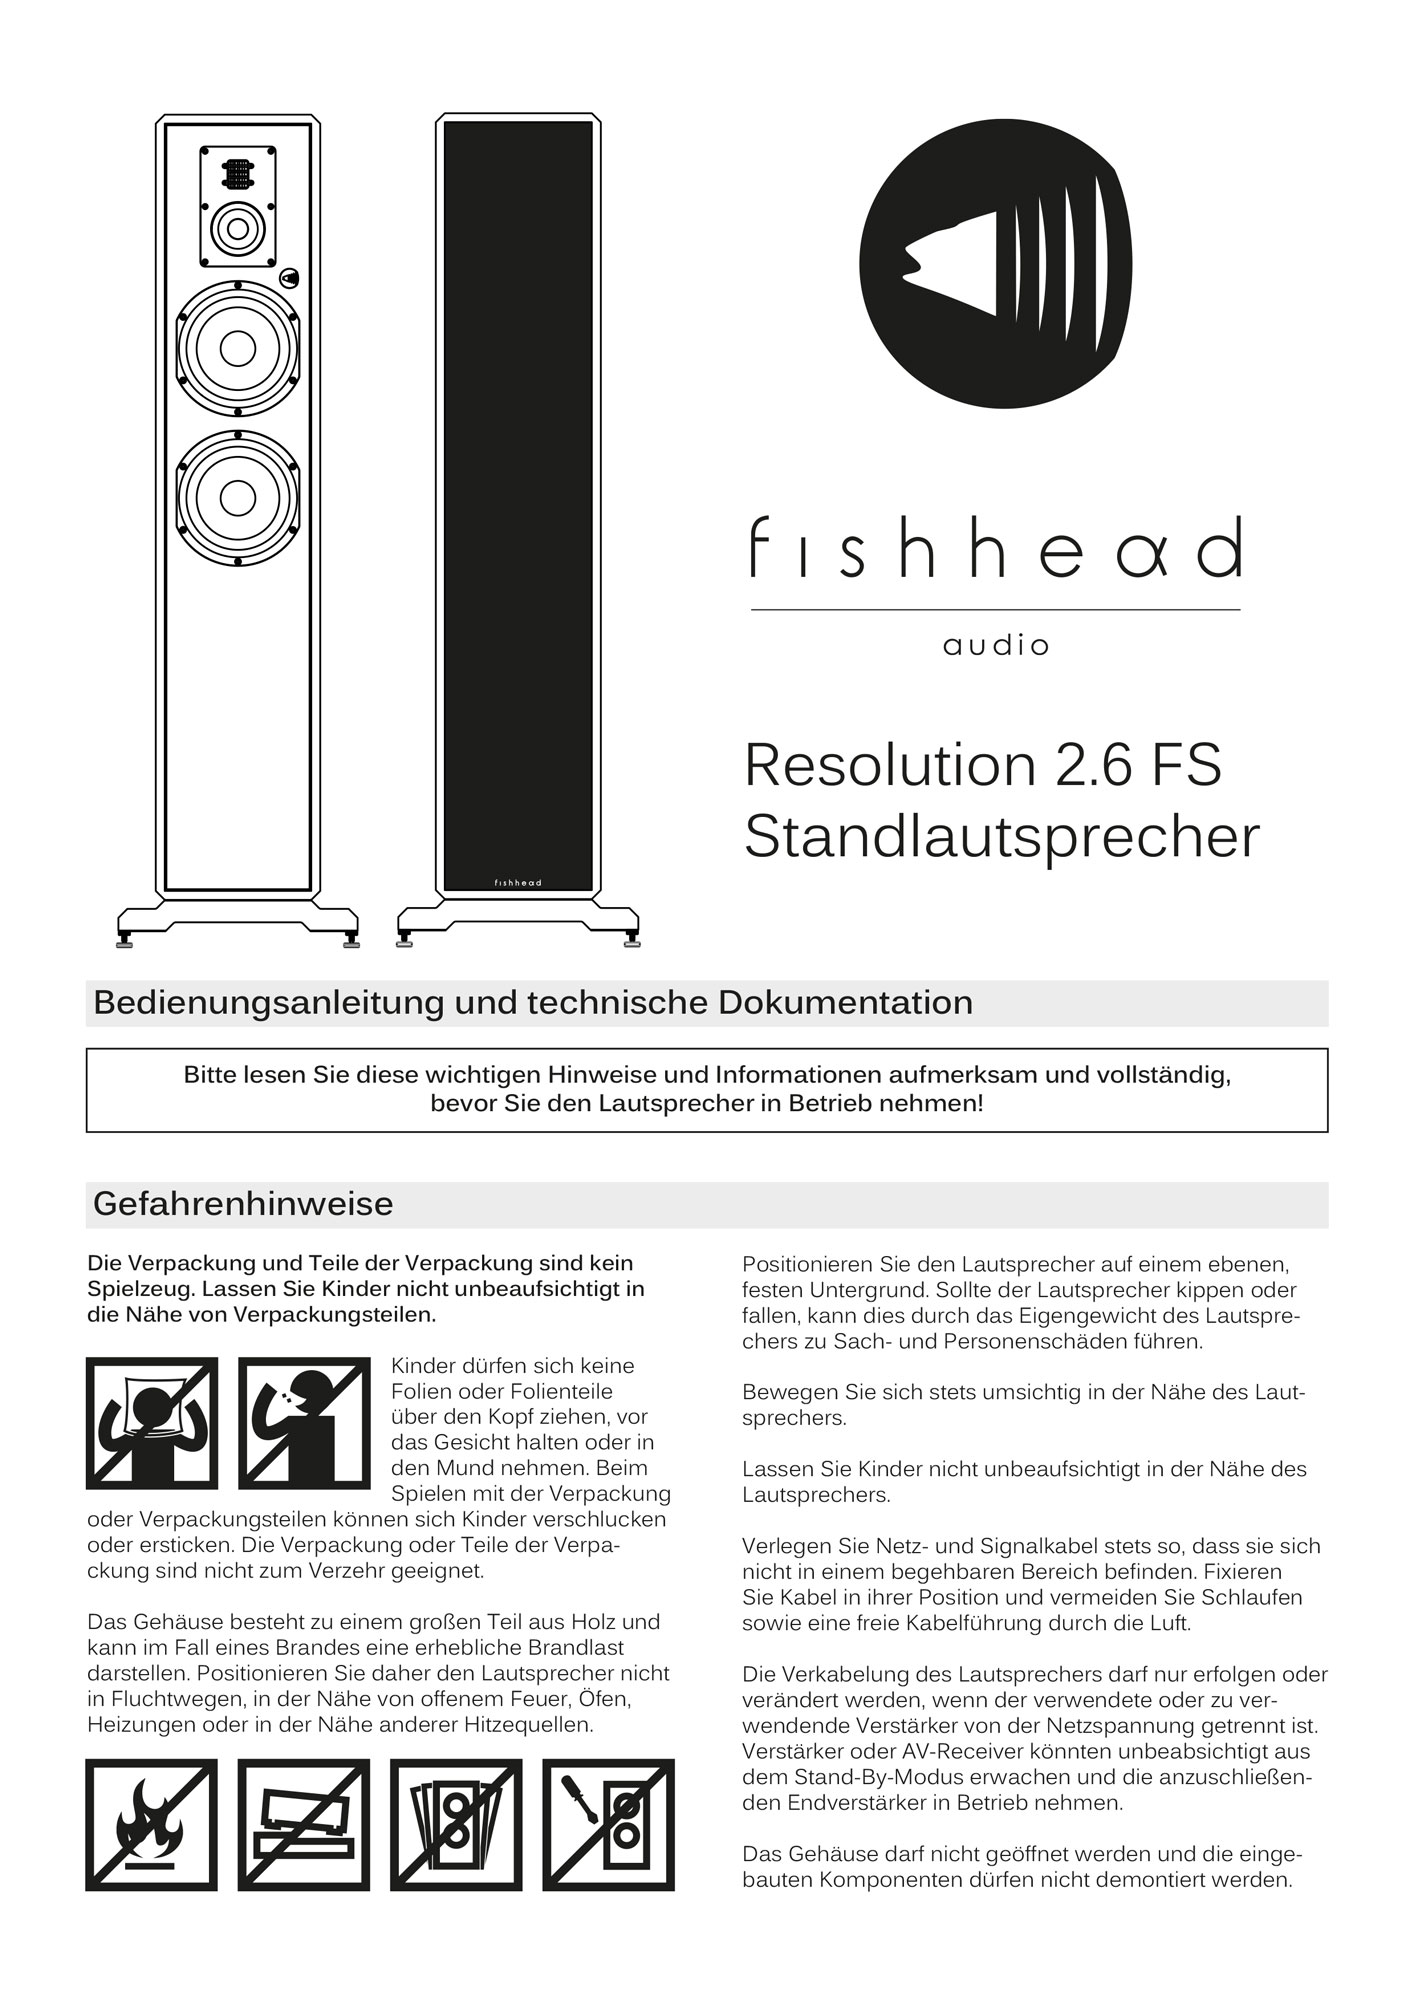 Fishhead Audio Resolution 2.6 FS - Manual